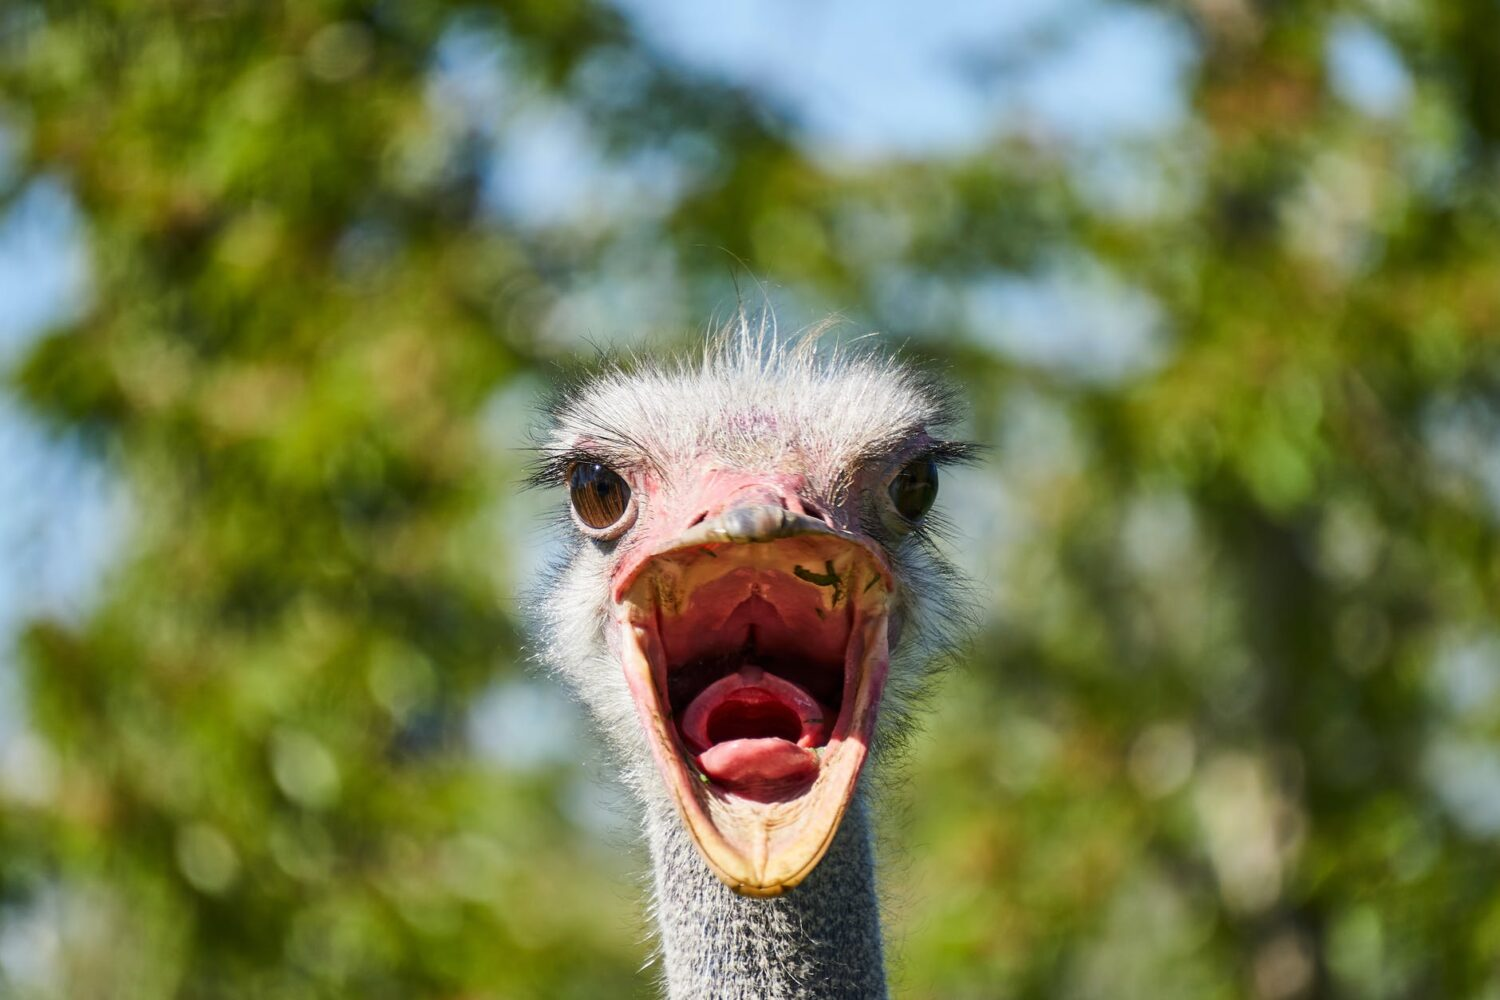 The Ostrich Head Syndrome